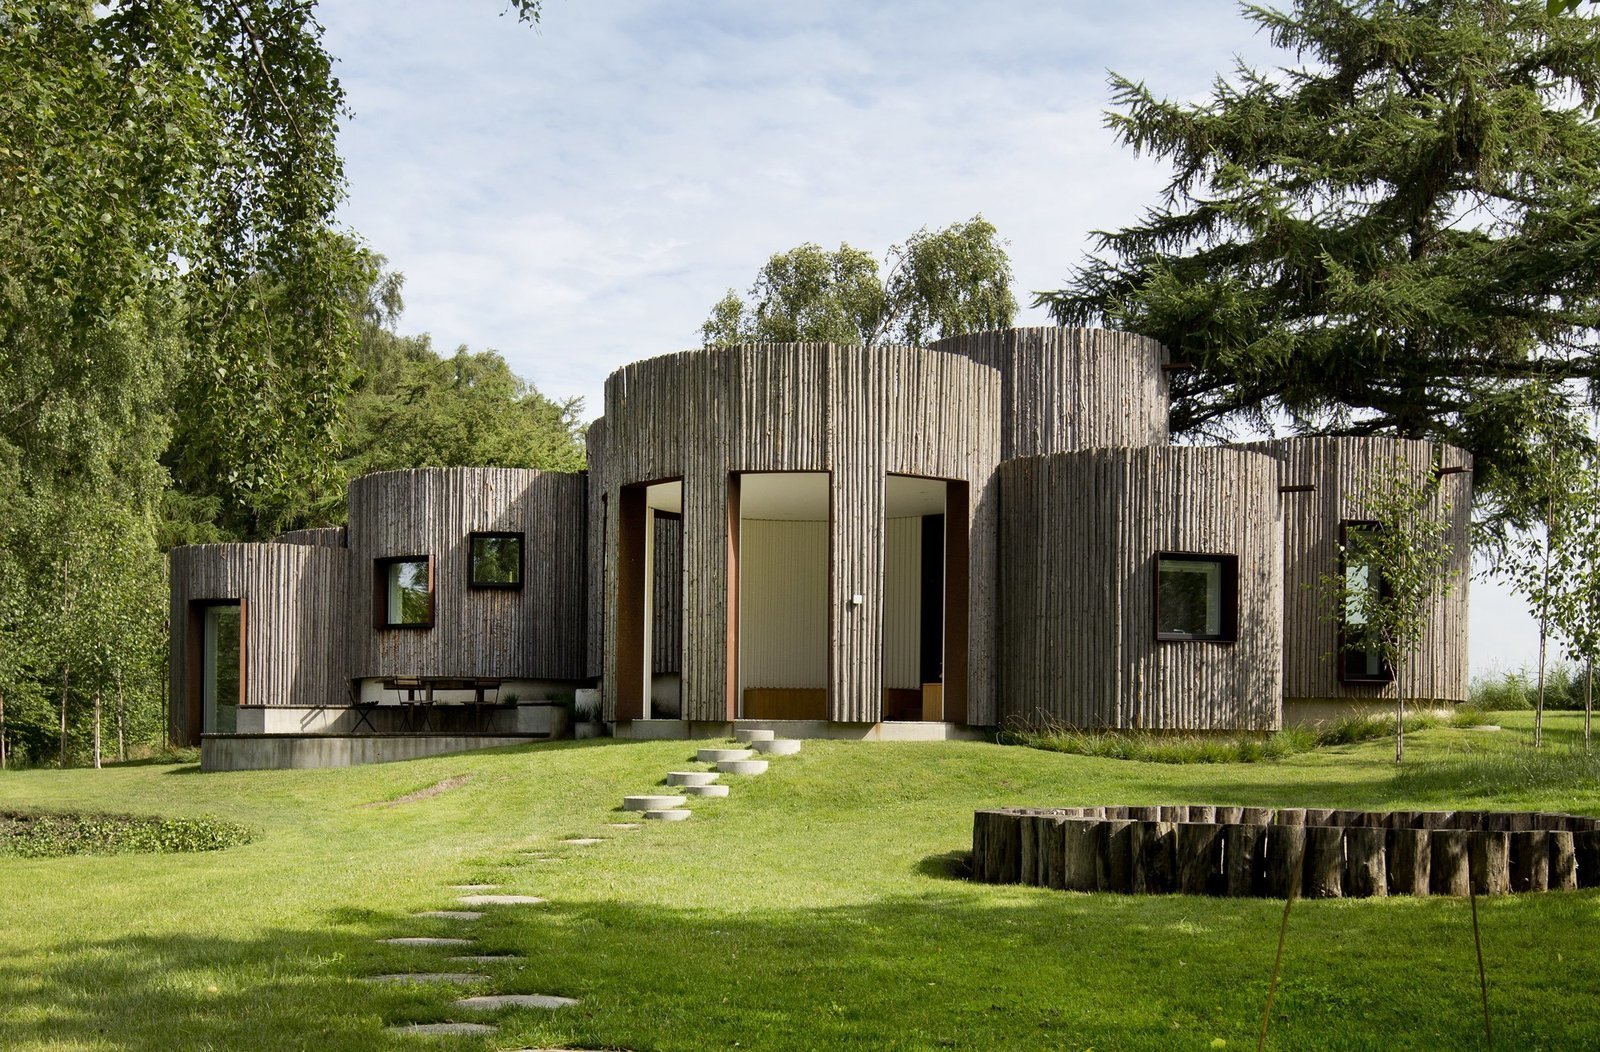 Photo 2 of 15 in Stay in This Danish Vacation Home Made Up of 9 Log-Clad Cylinders